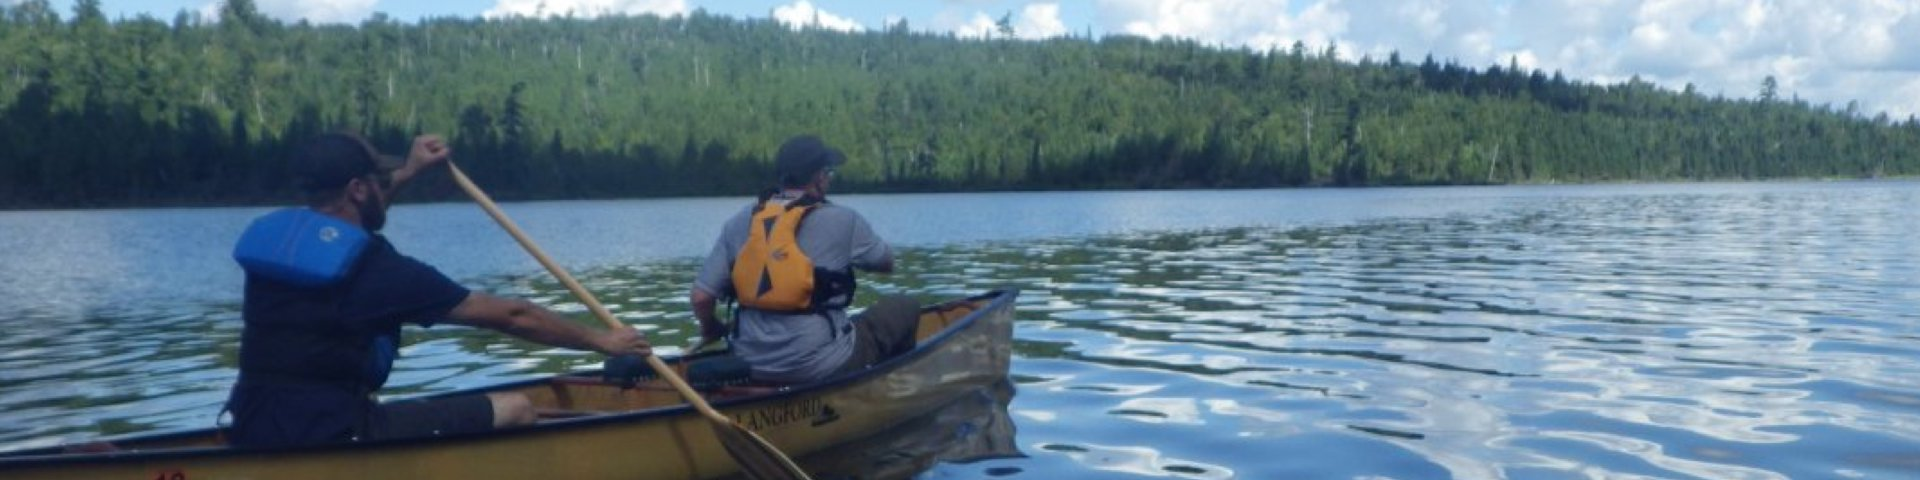 BWCAW Canoe Day Trips by Stone Harbor Wilderness Supply - Image 404